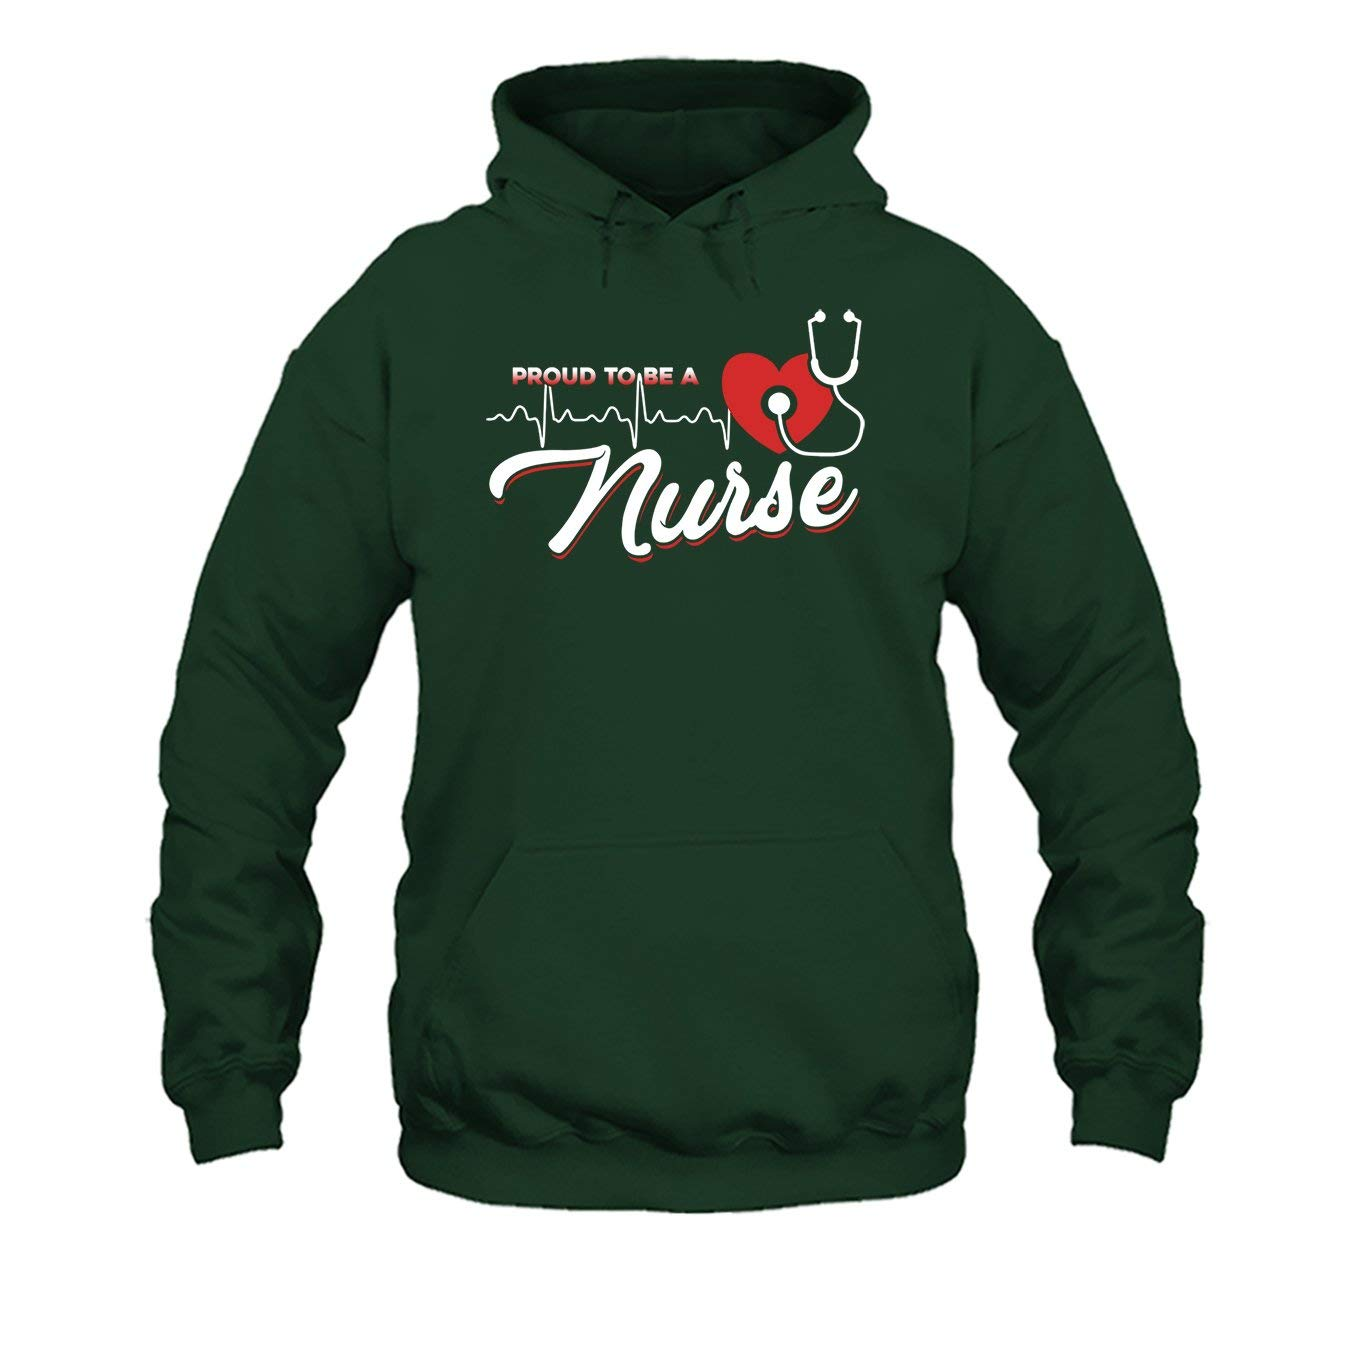 Cool Proud to Be A Nurse Tshirt Sweatshirt Design